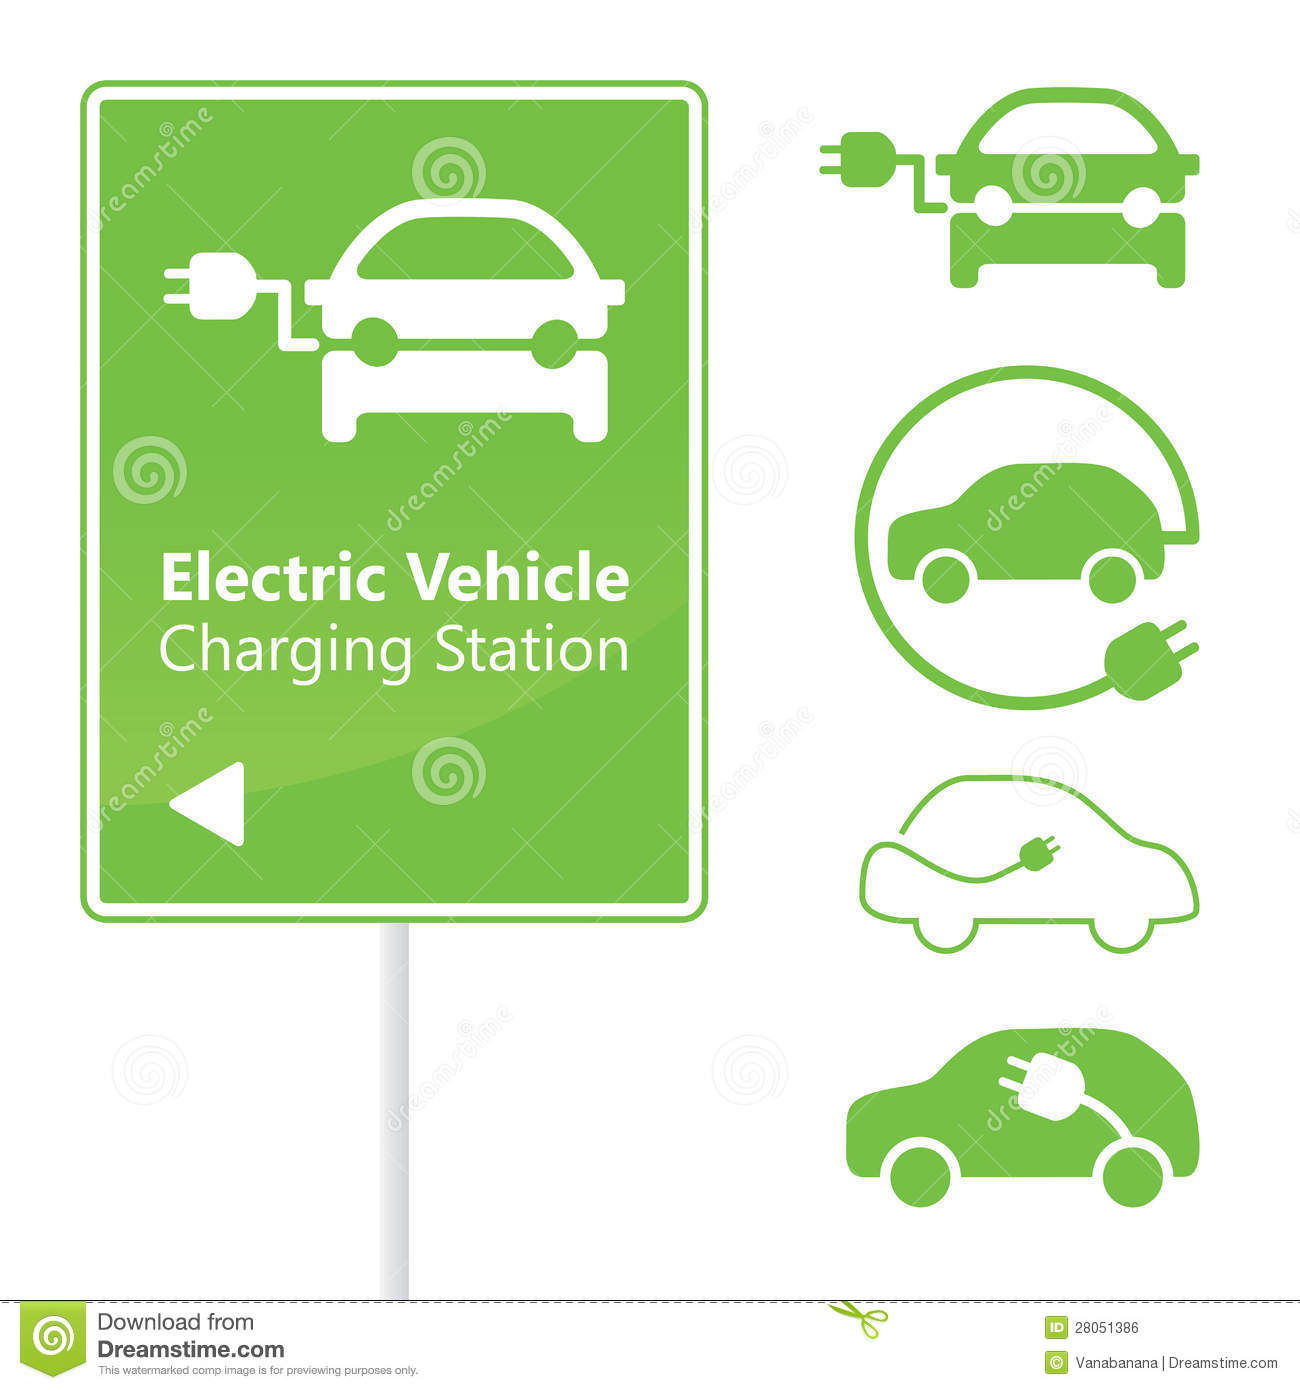 Electric Vehicle Charging Station road sign